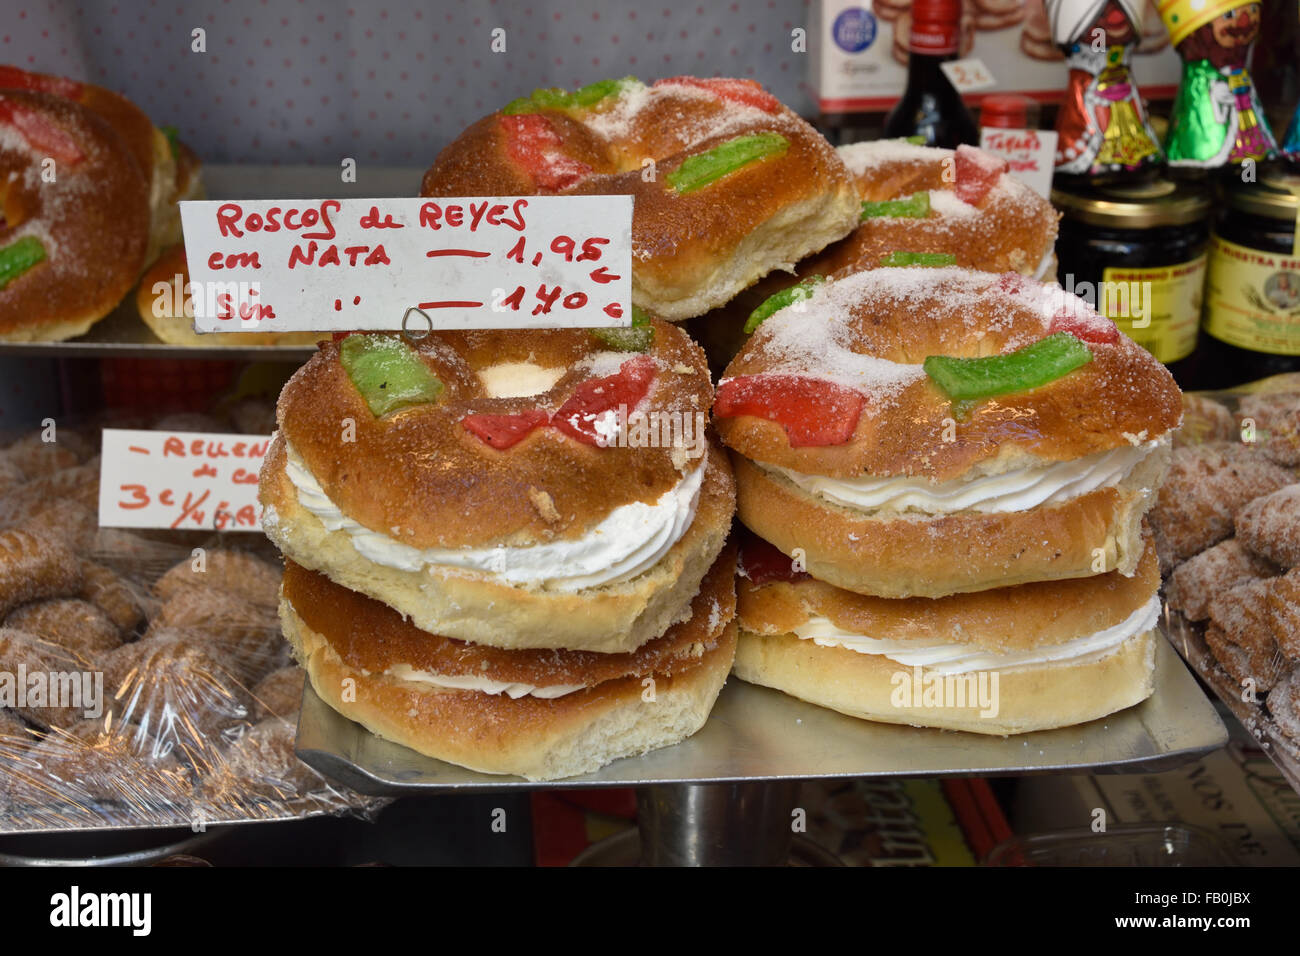 Bakery Malaga Spanish Spain Andalusia ( roscof de reyes - twisted roll of kings ) - Stock Image